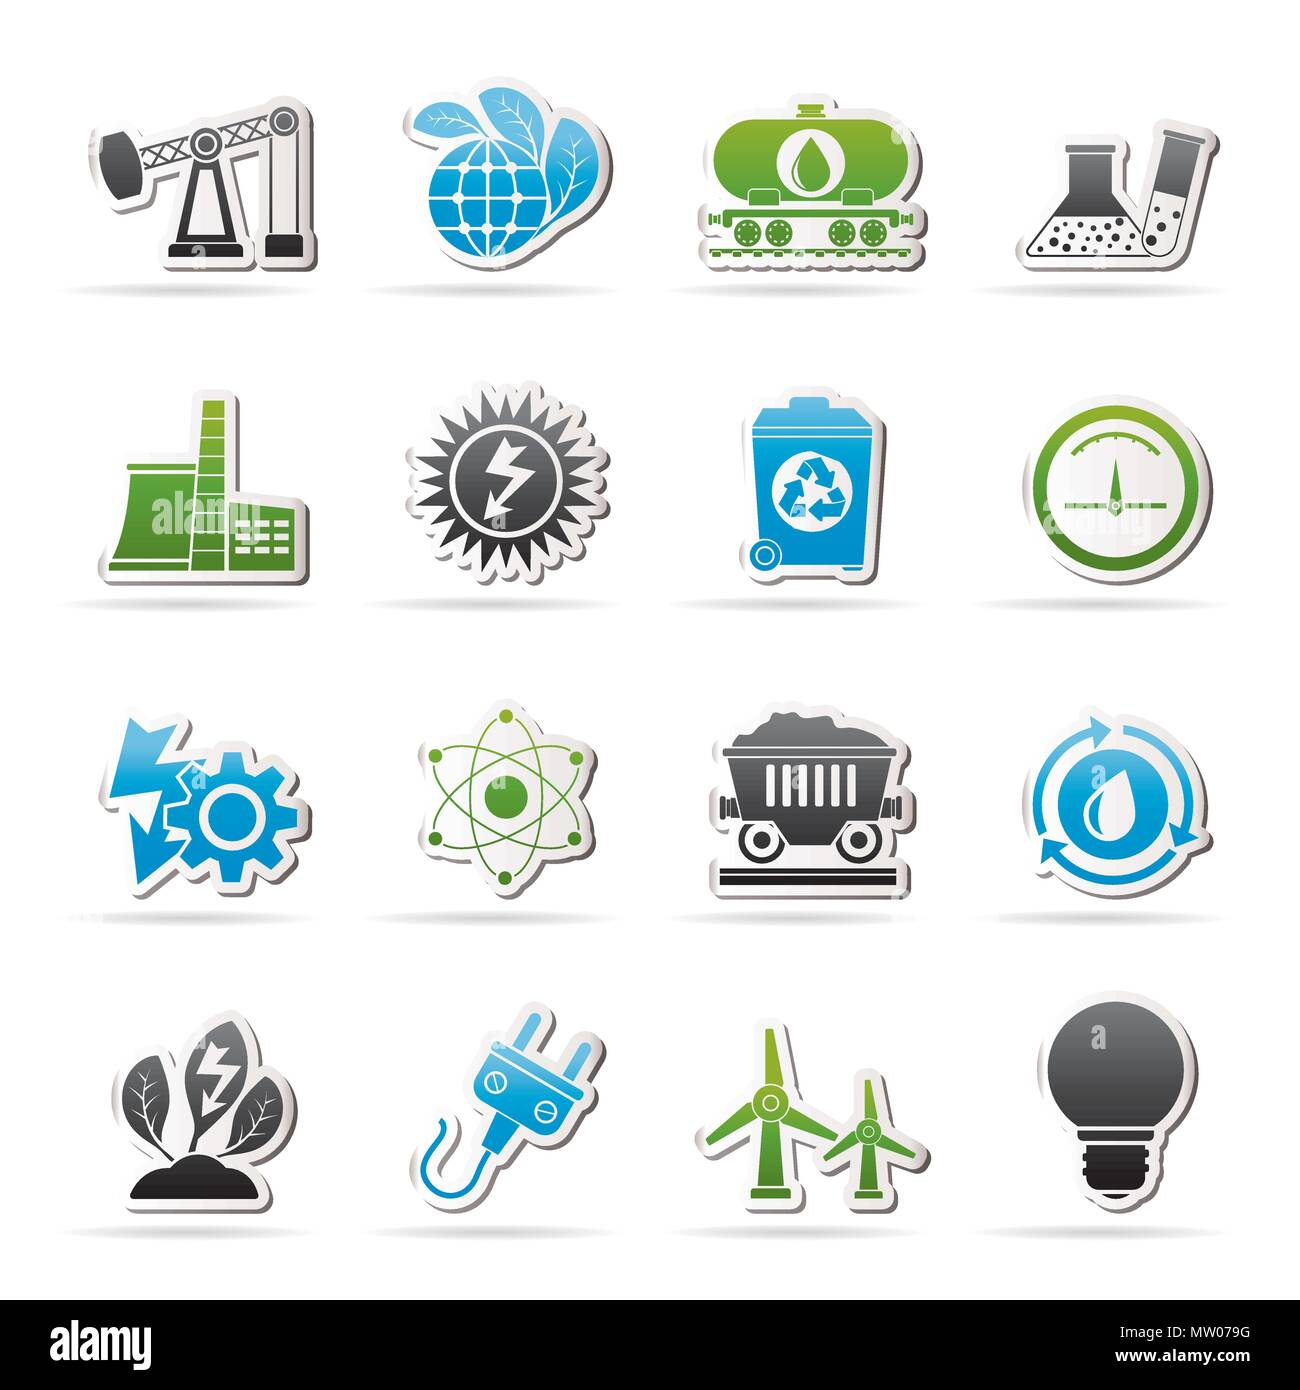 Power and energy production icons - vector icon set - Stock Image